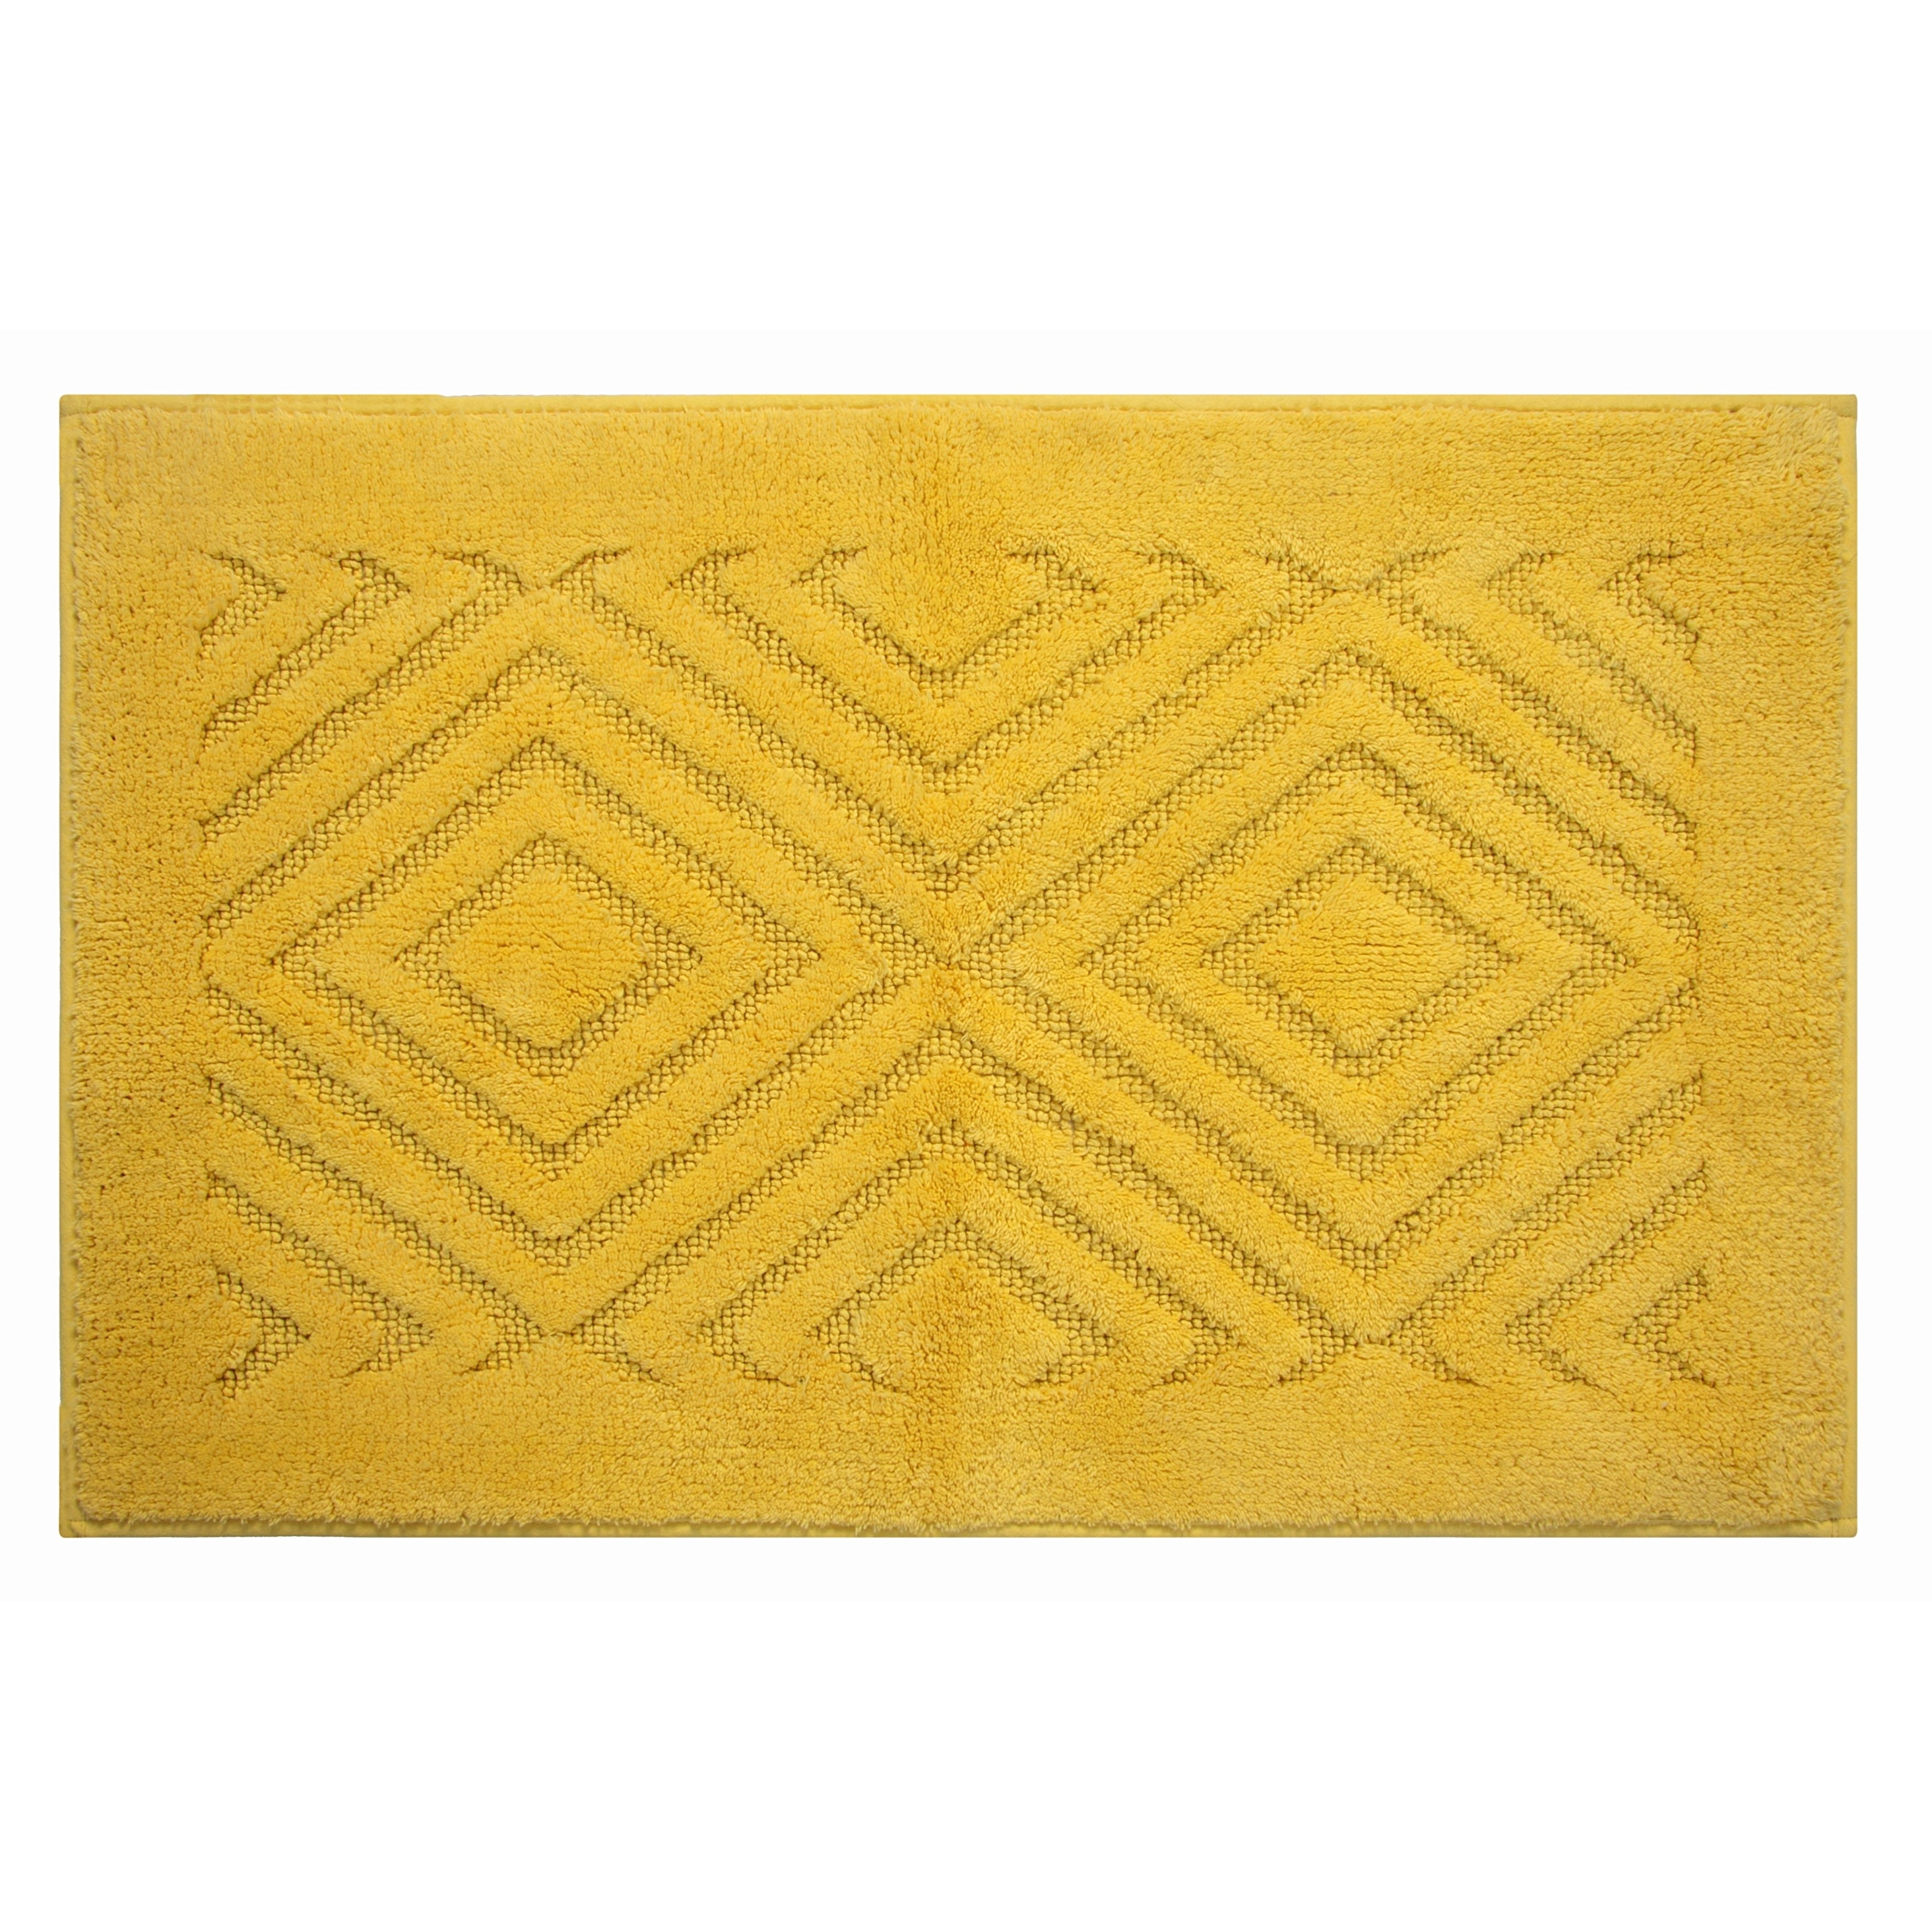 Trier Cotton Non Skid 2 Piece Contour And Bath Rug Set By Better Trends On Sale Overstock 8886963